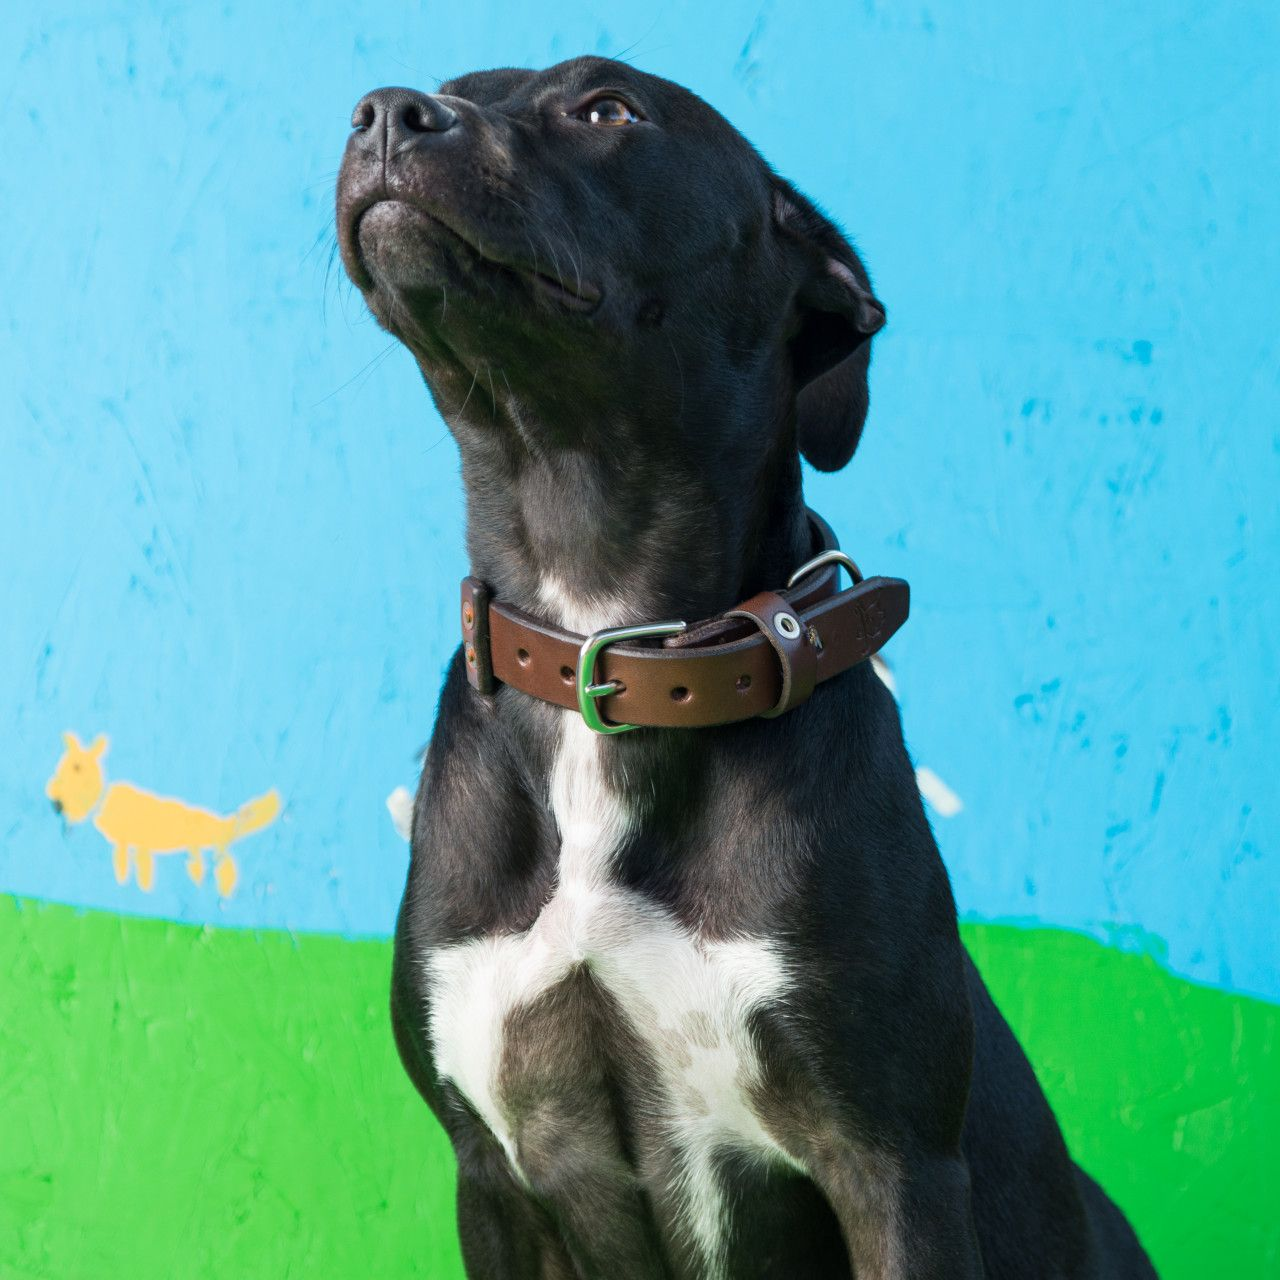 A dog in a leather dog collar medium in dark coffee brown leather on his neck visible on a blue-green background